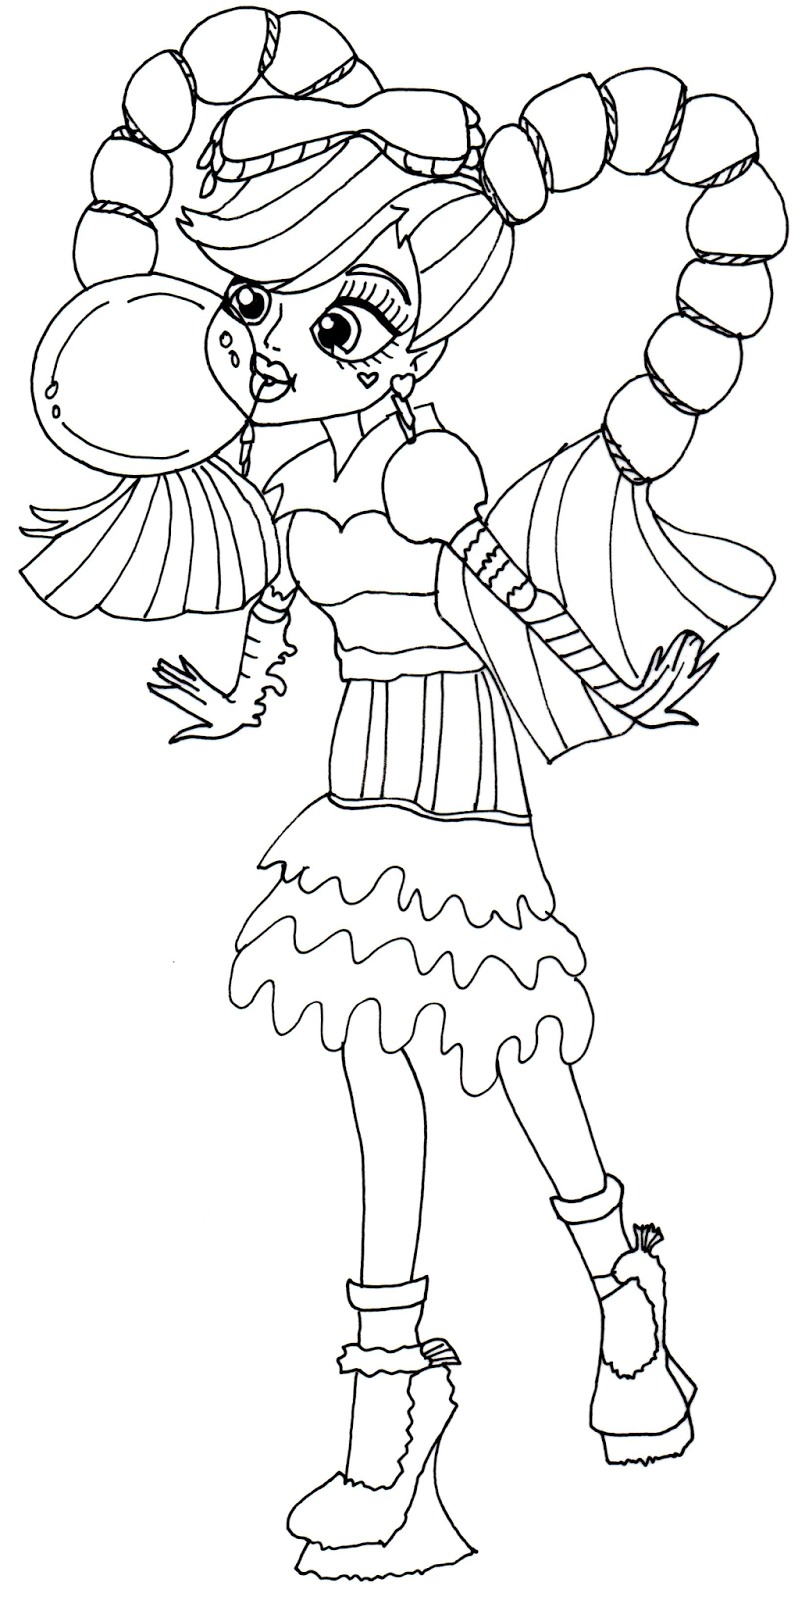 Monster high for coloring part 3 for Monster high free coloring pages